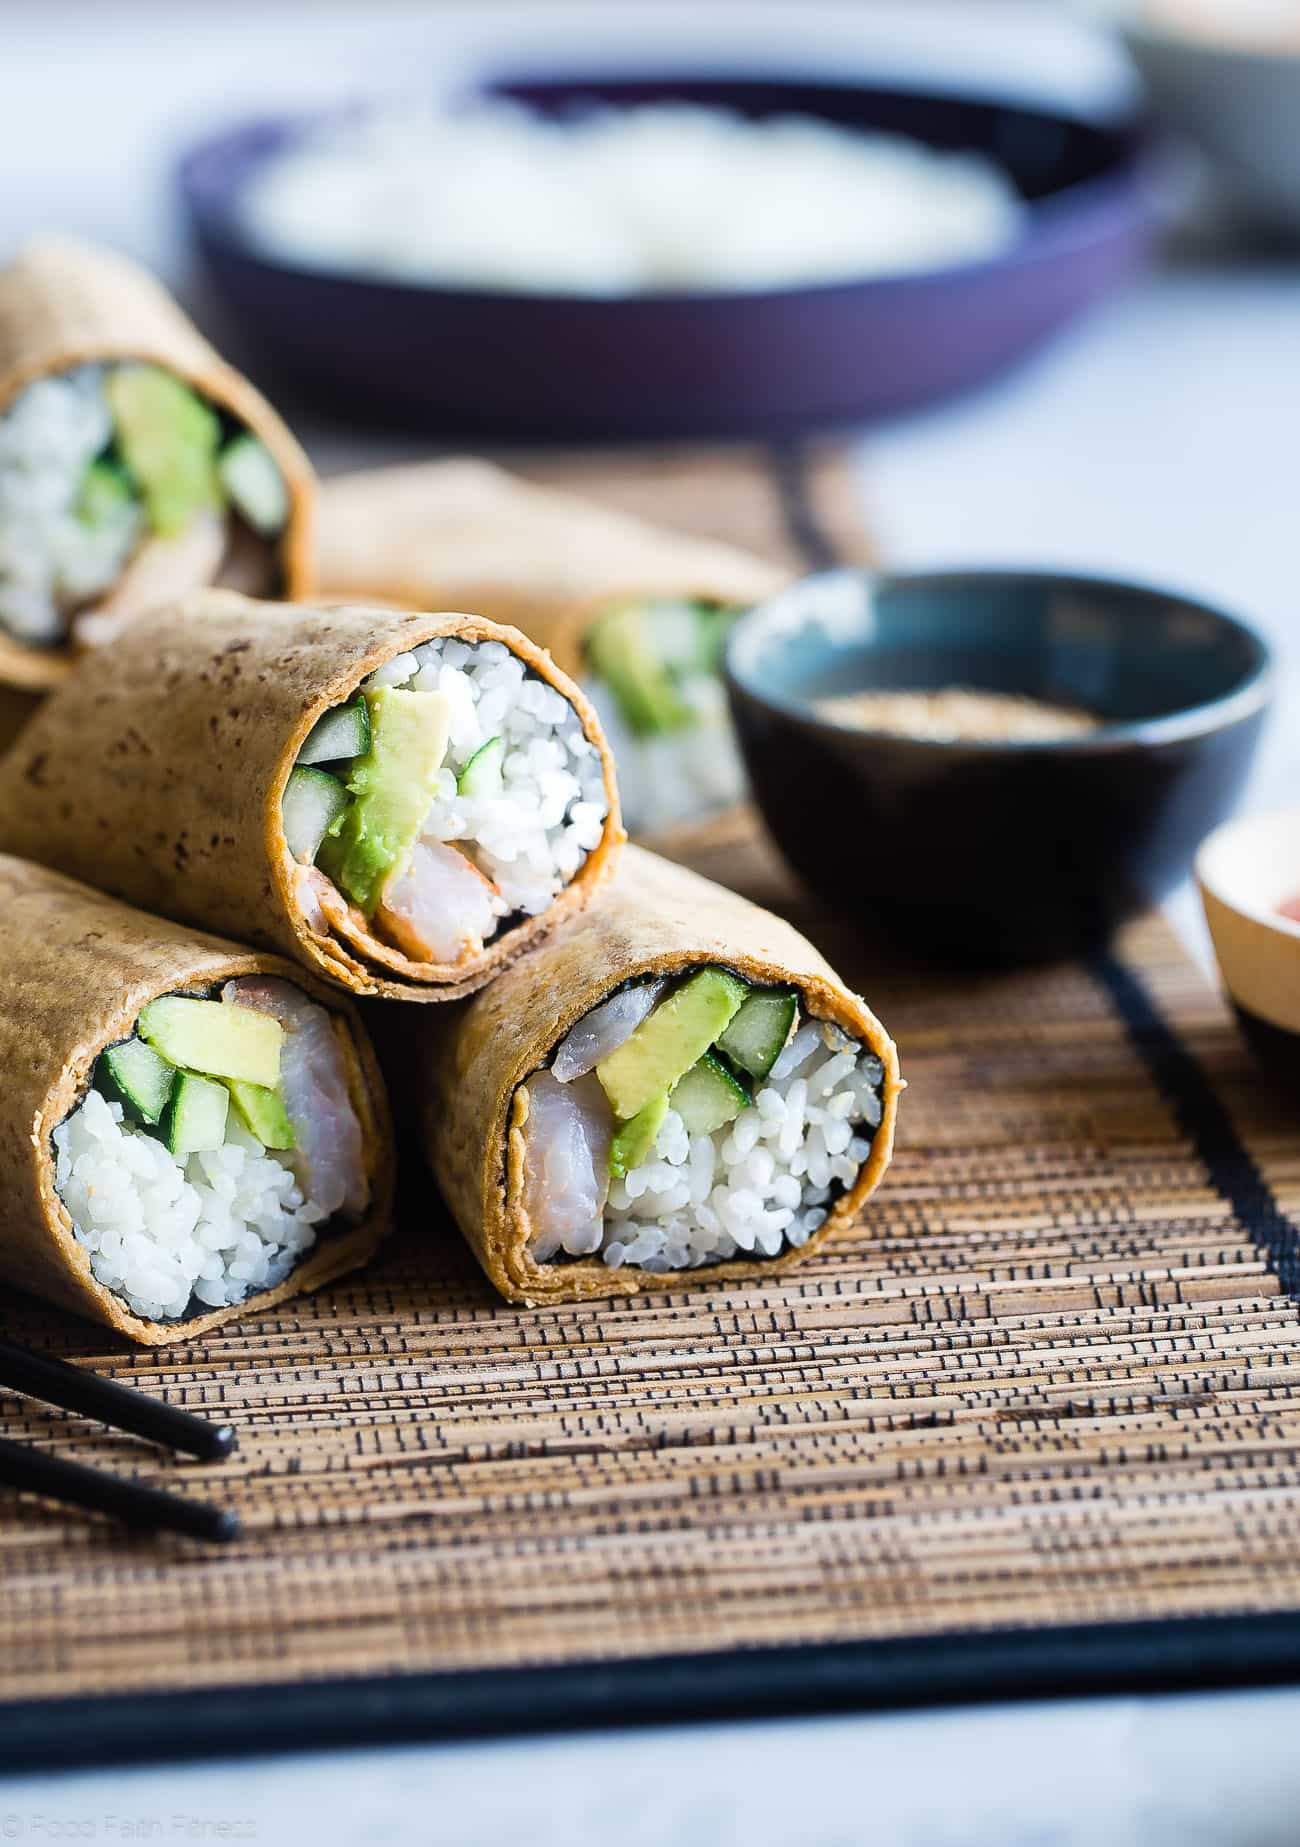 Gluten Free Spicy Shrimp Sushi Burritos - A quick and easy, healthy lunch recipe that is dairy free and has all the sushi taste, without all the work! Perfect for meal prep too! | Foodfaithfitness.com | @FoodFaithFit